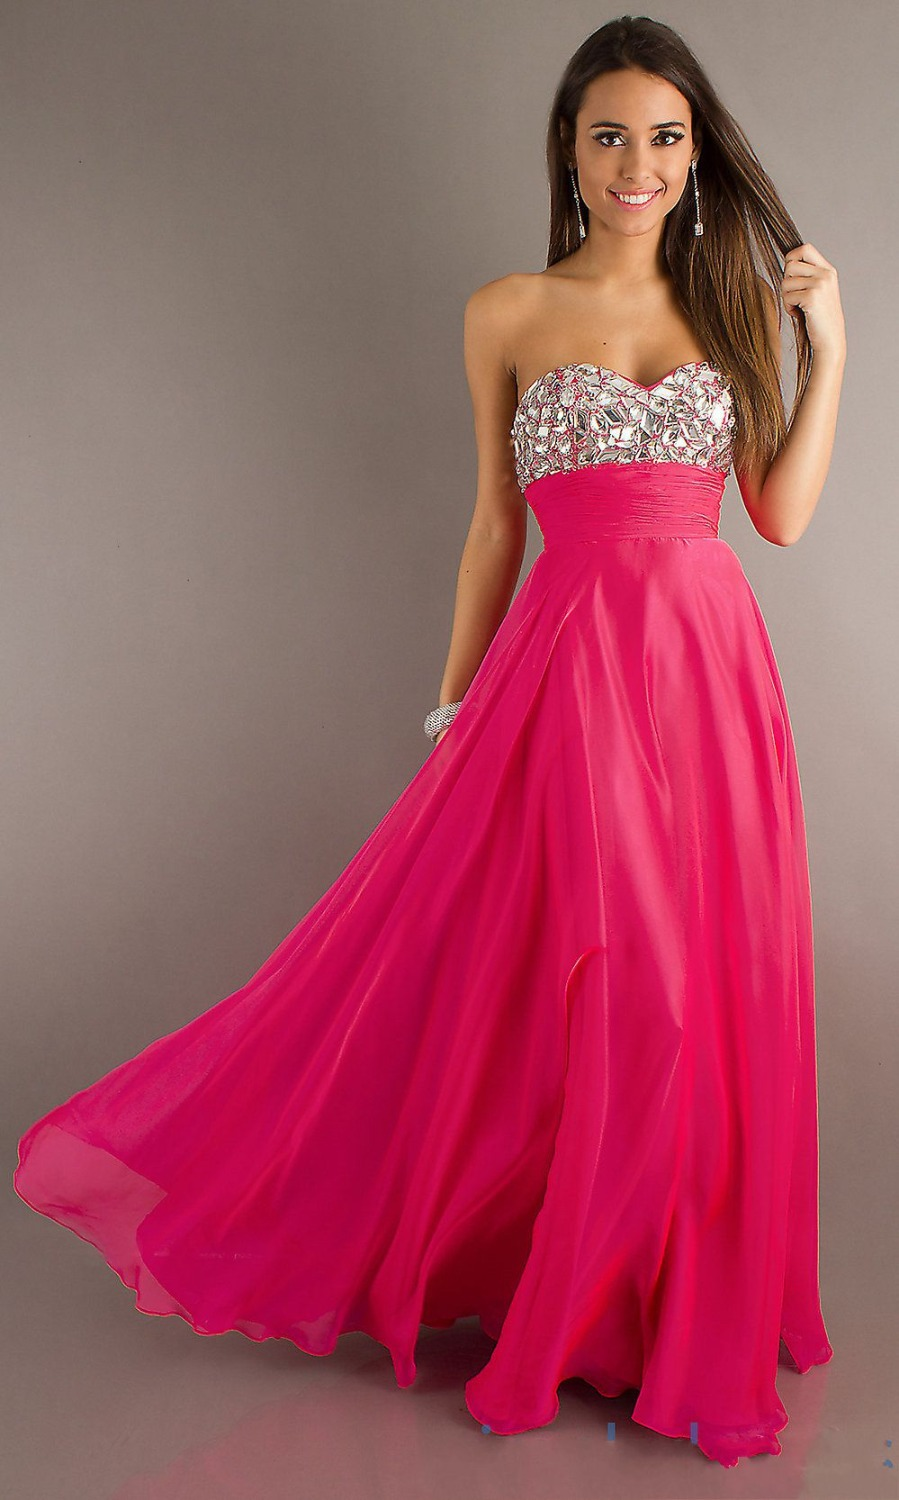 prom dresses in oklahoma city - Dress Yp